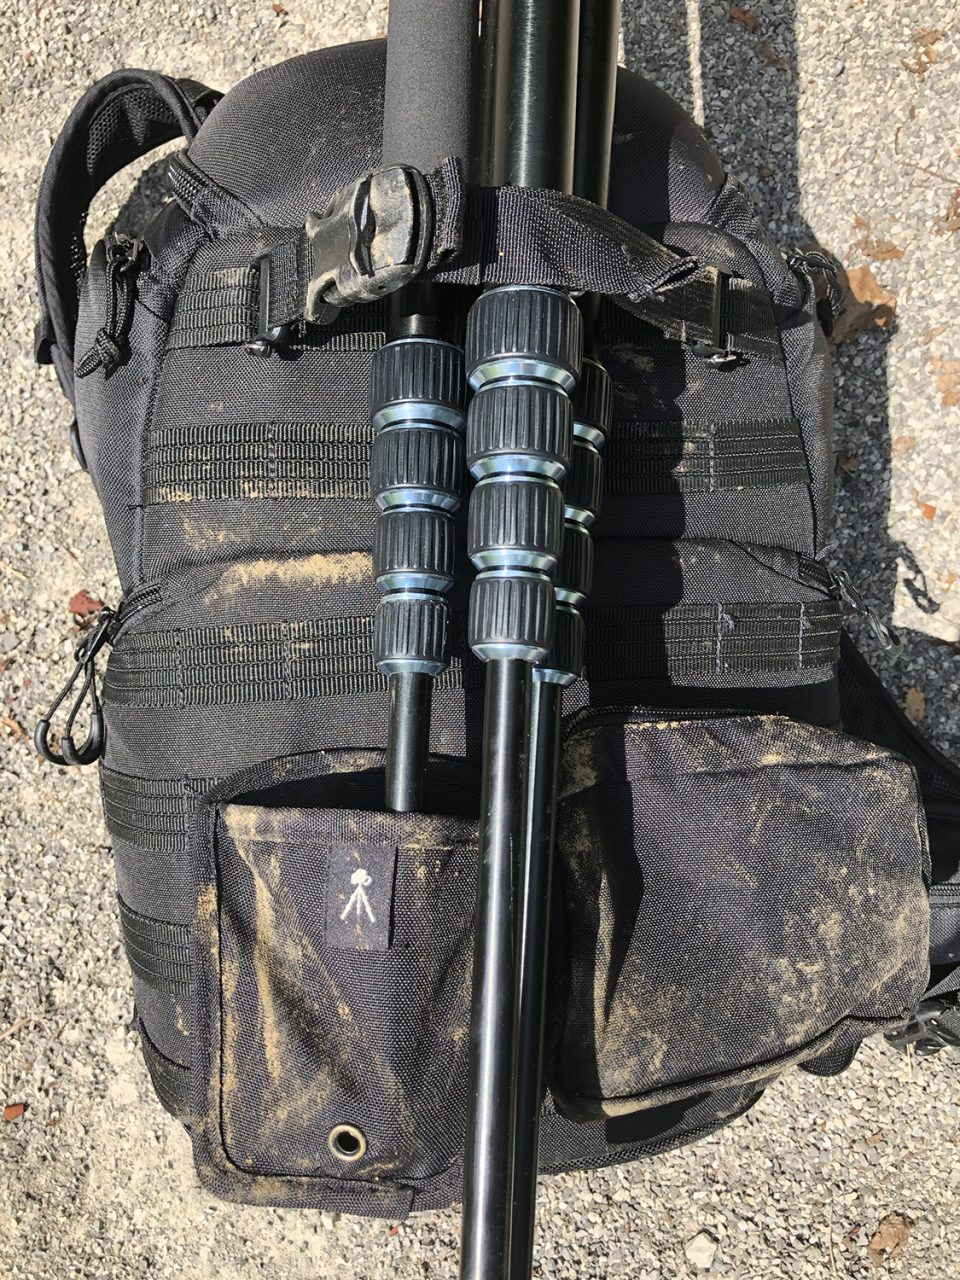 A photo of my camera bag and one of my tripods as seen on my last trip to the desert for landscape photography.